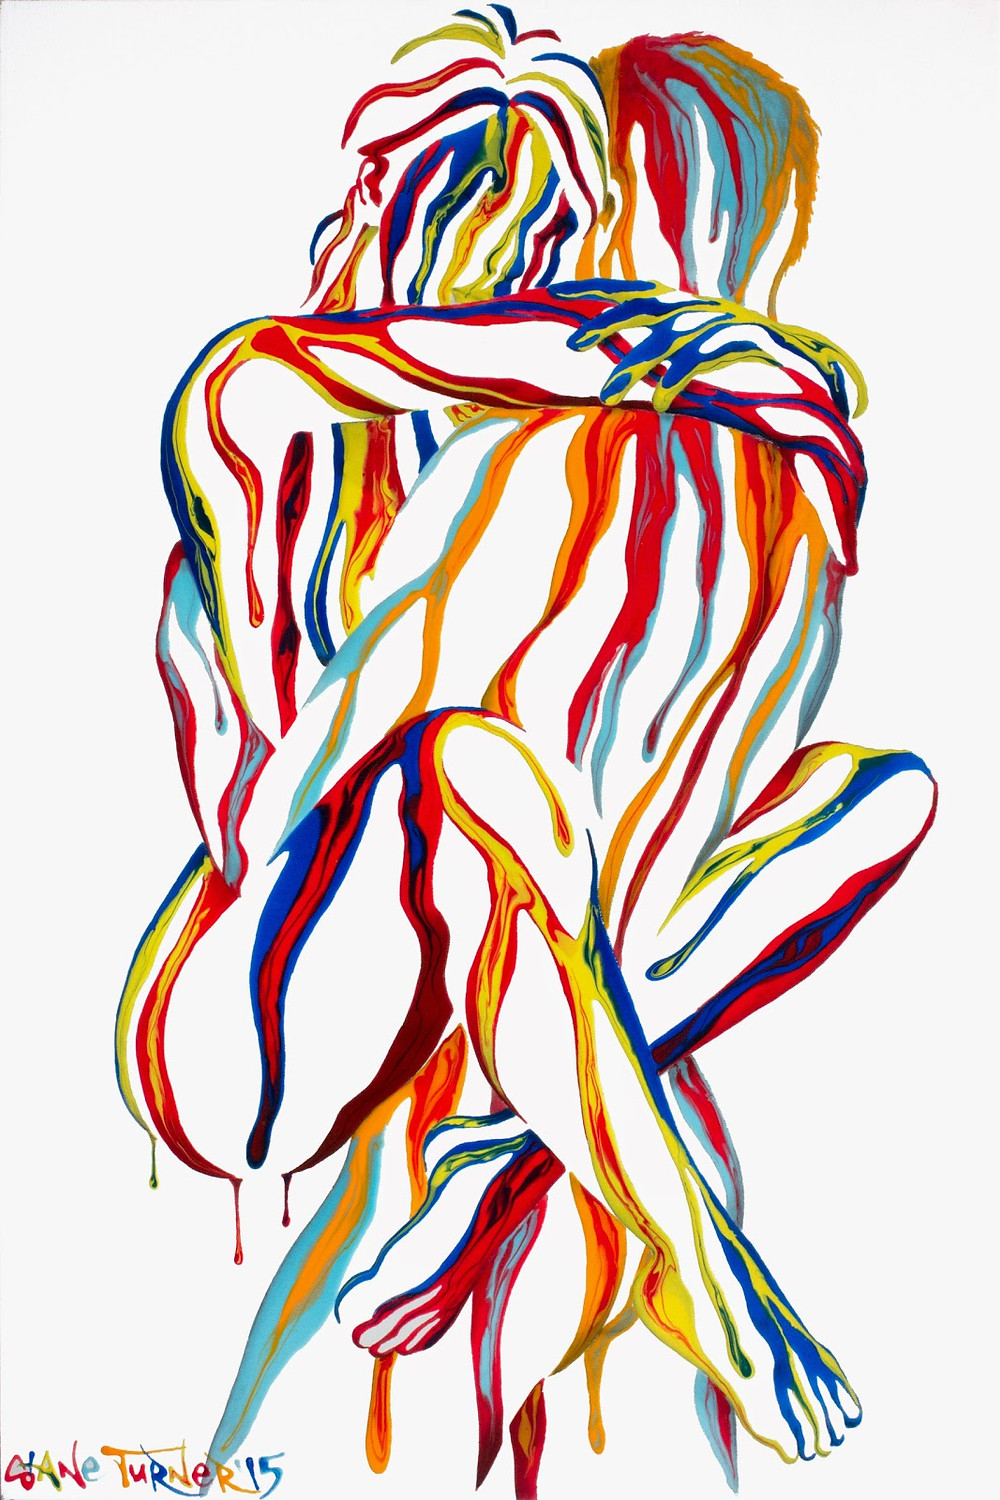 Picture of Right Here In My Arms 2 painting by Shane Turner. Painting of an embrace of a couple. Female figure jumping into males arms. Painted using negative space and colorful acrylic dripping paint on black background.